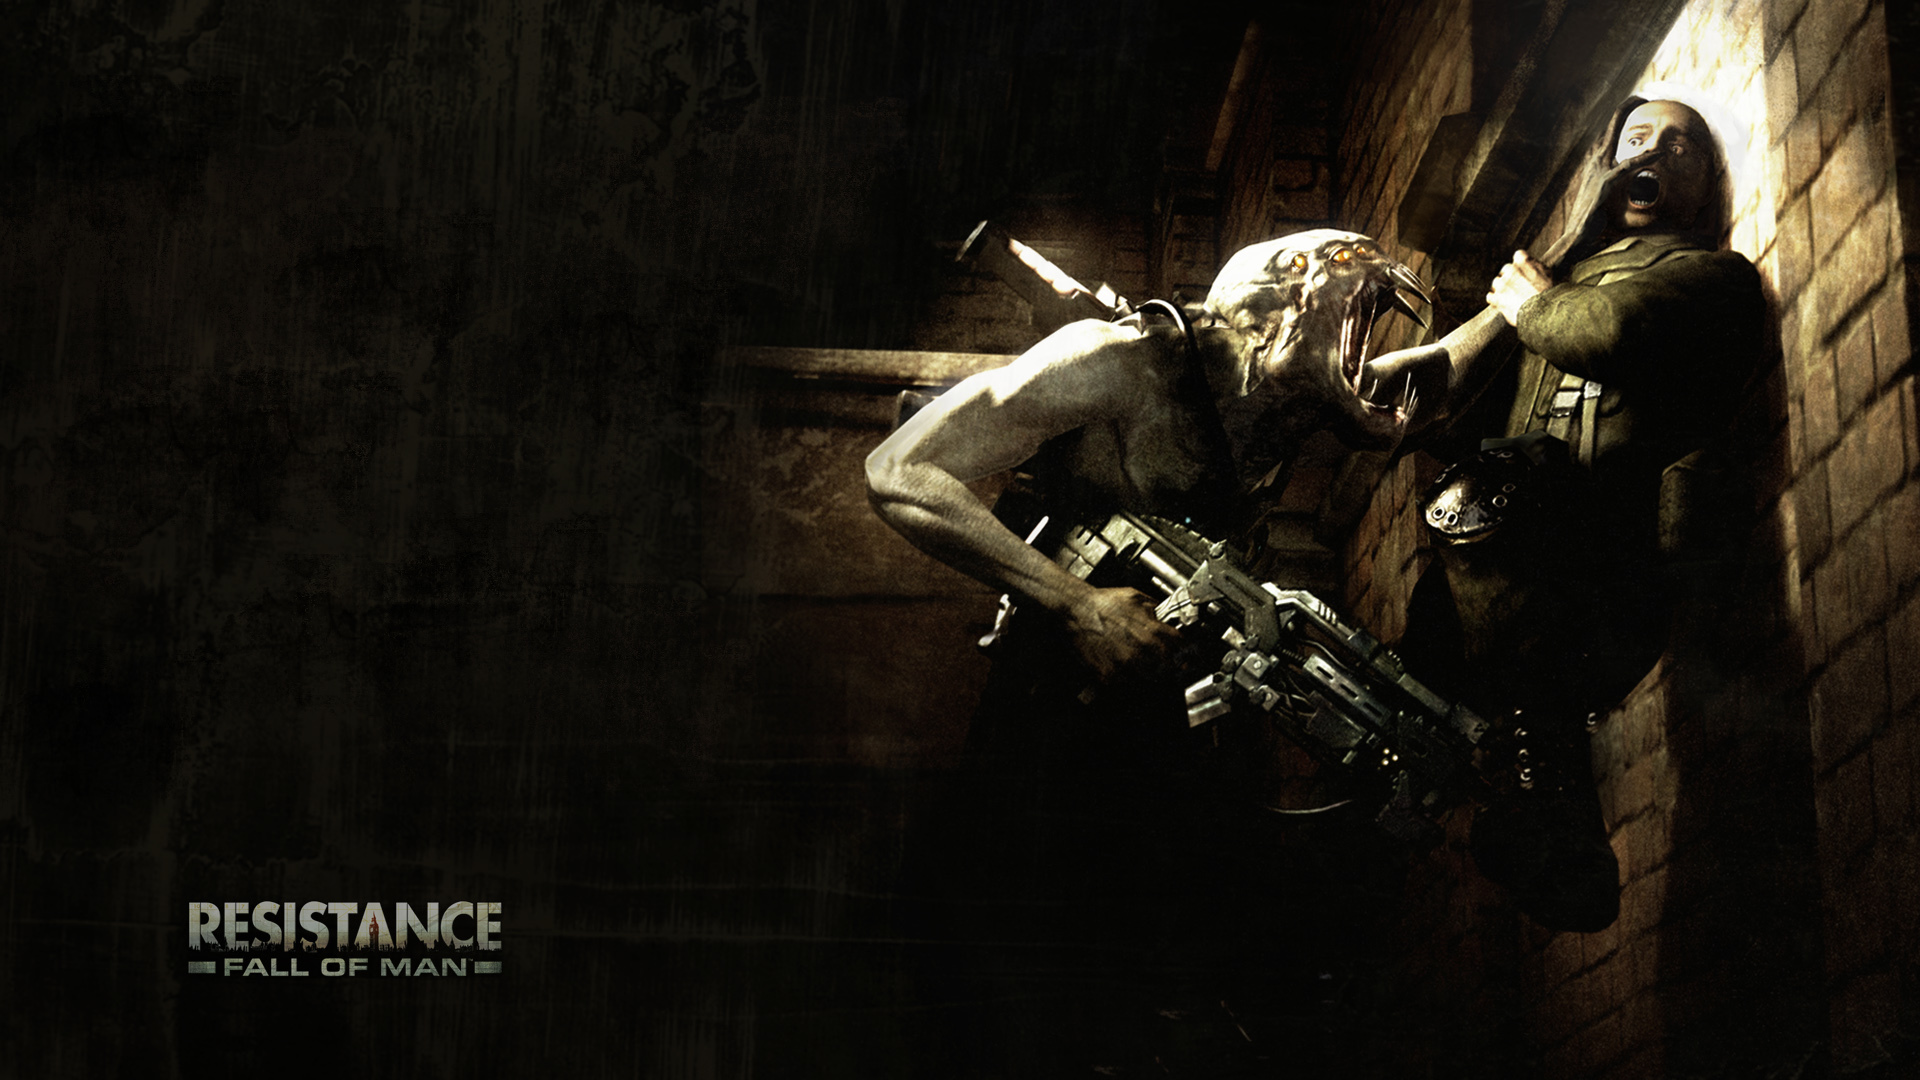 video games resistance Monsters HD Wallpaper